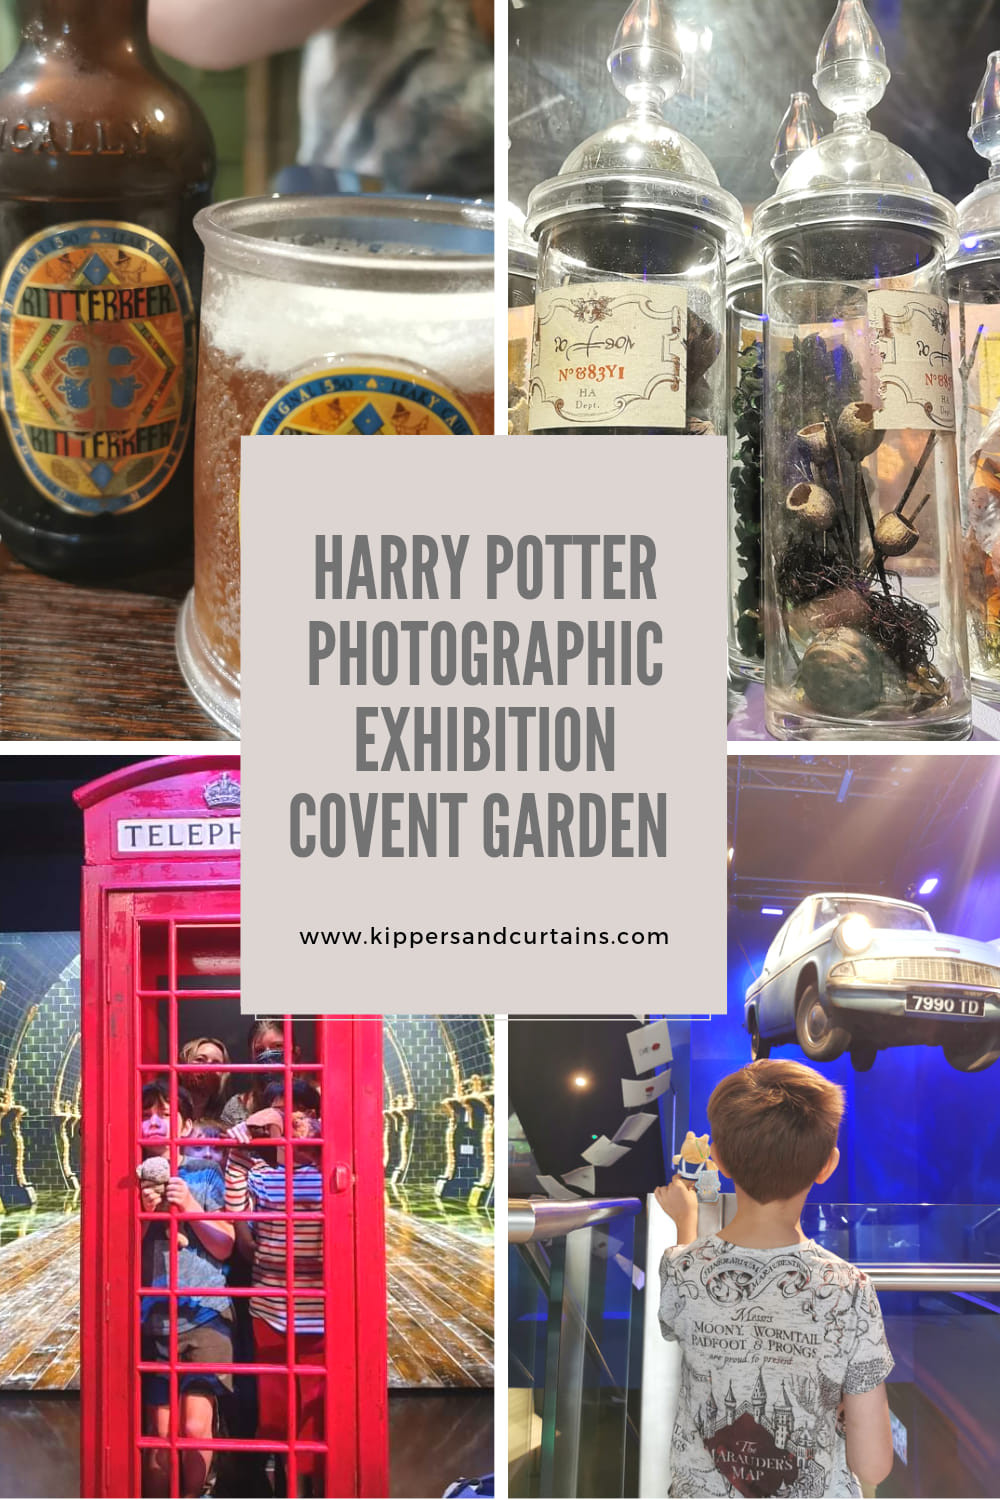 Harry Potter on Location Photographic Exhibition Covent Garden